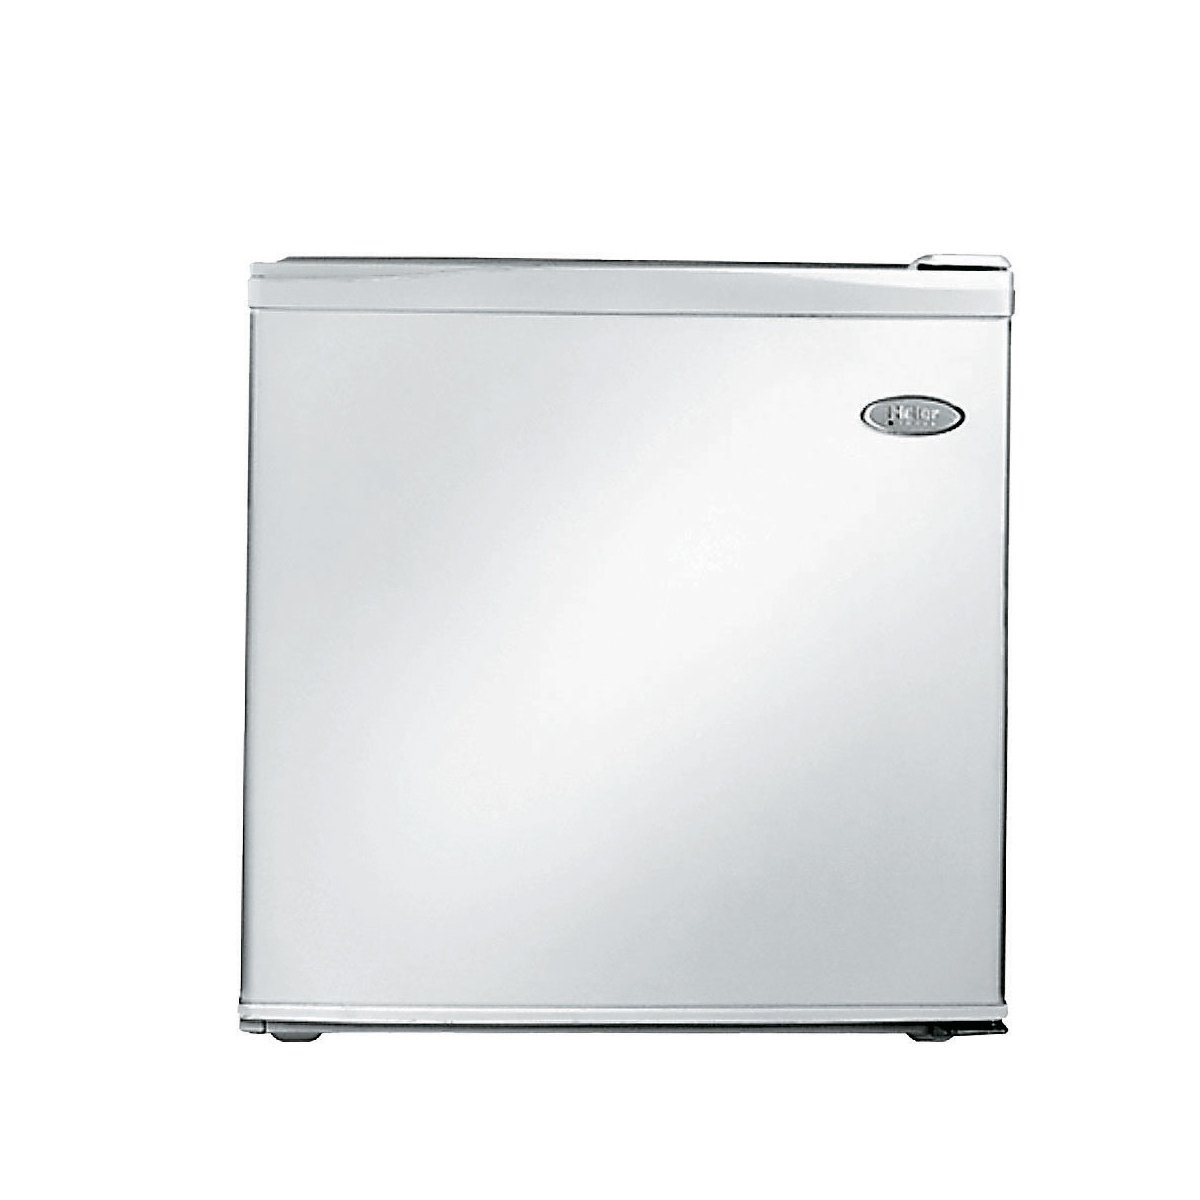 haier bar fridge. haier 62 l 1 star direct-cool single door refrigerator (hr-62hp, silver grey): amazon.in: home \u0026 kitchen bar fridge